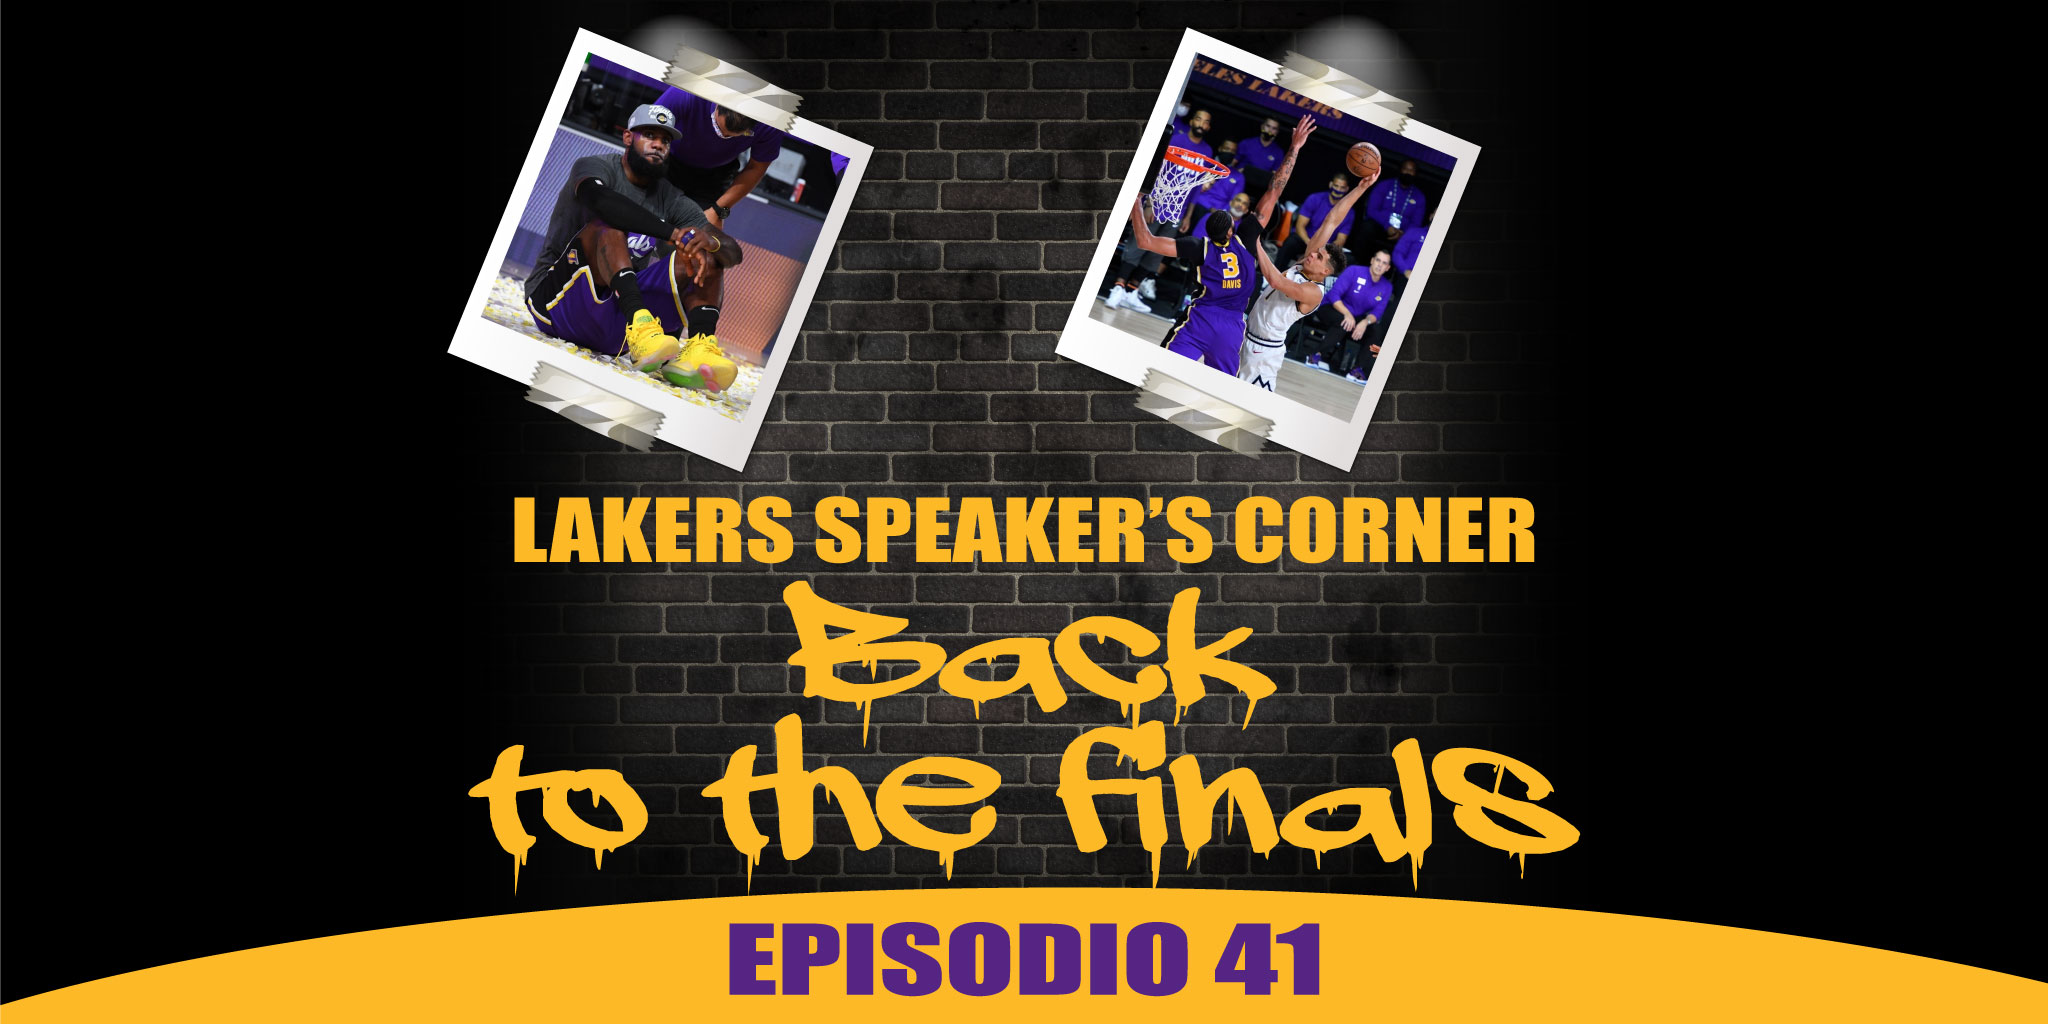 Back to the Finals